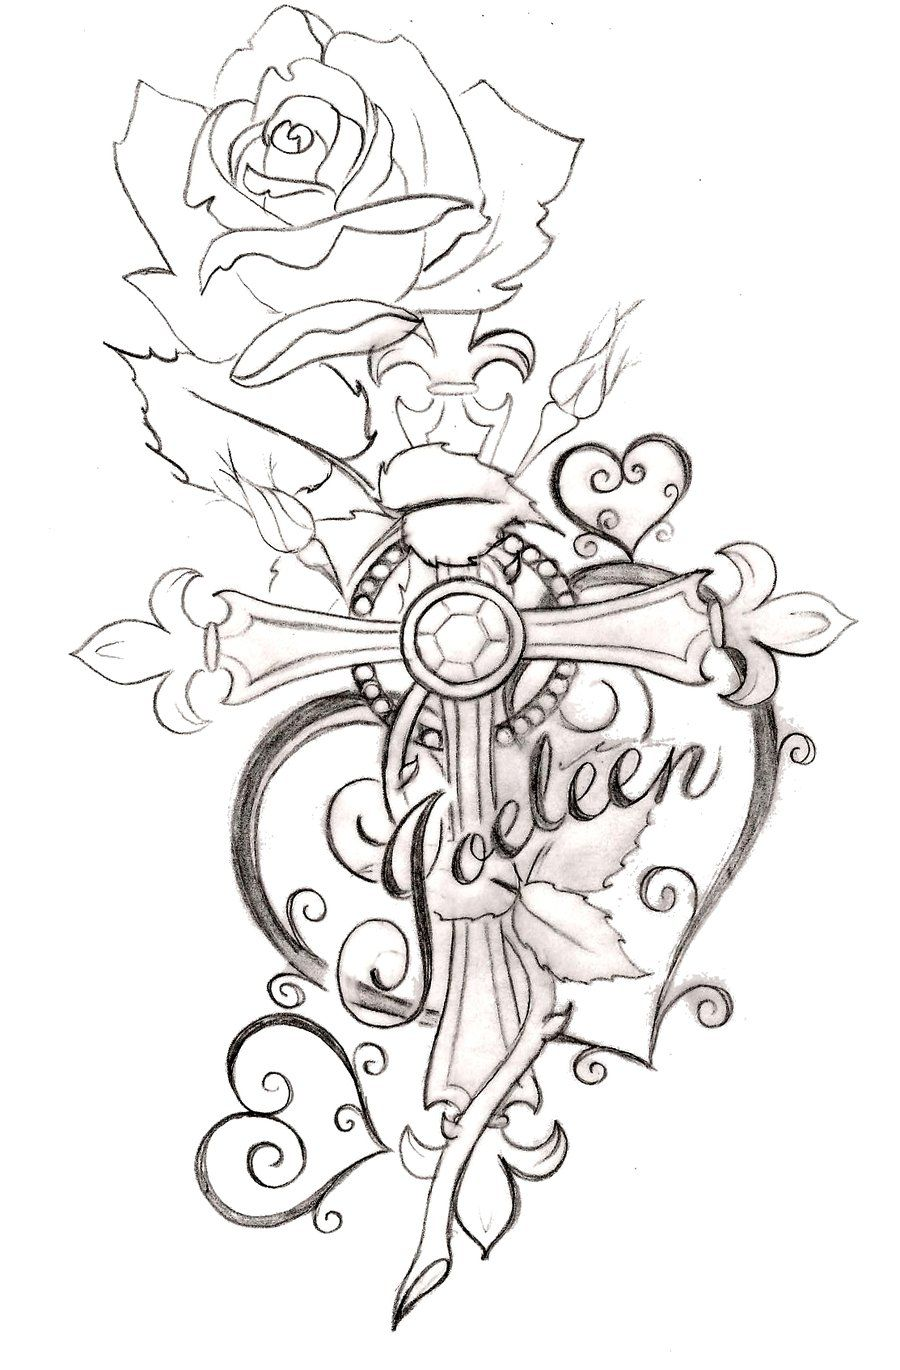 Heart With Rose And Banner: Pin On Tattoos And Flash